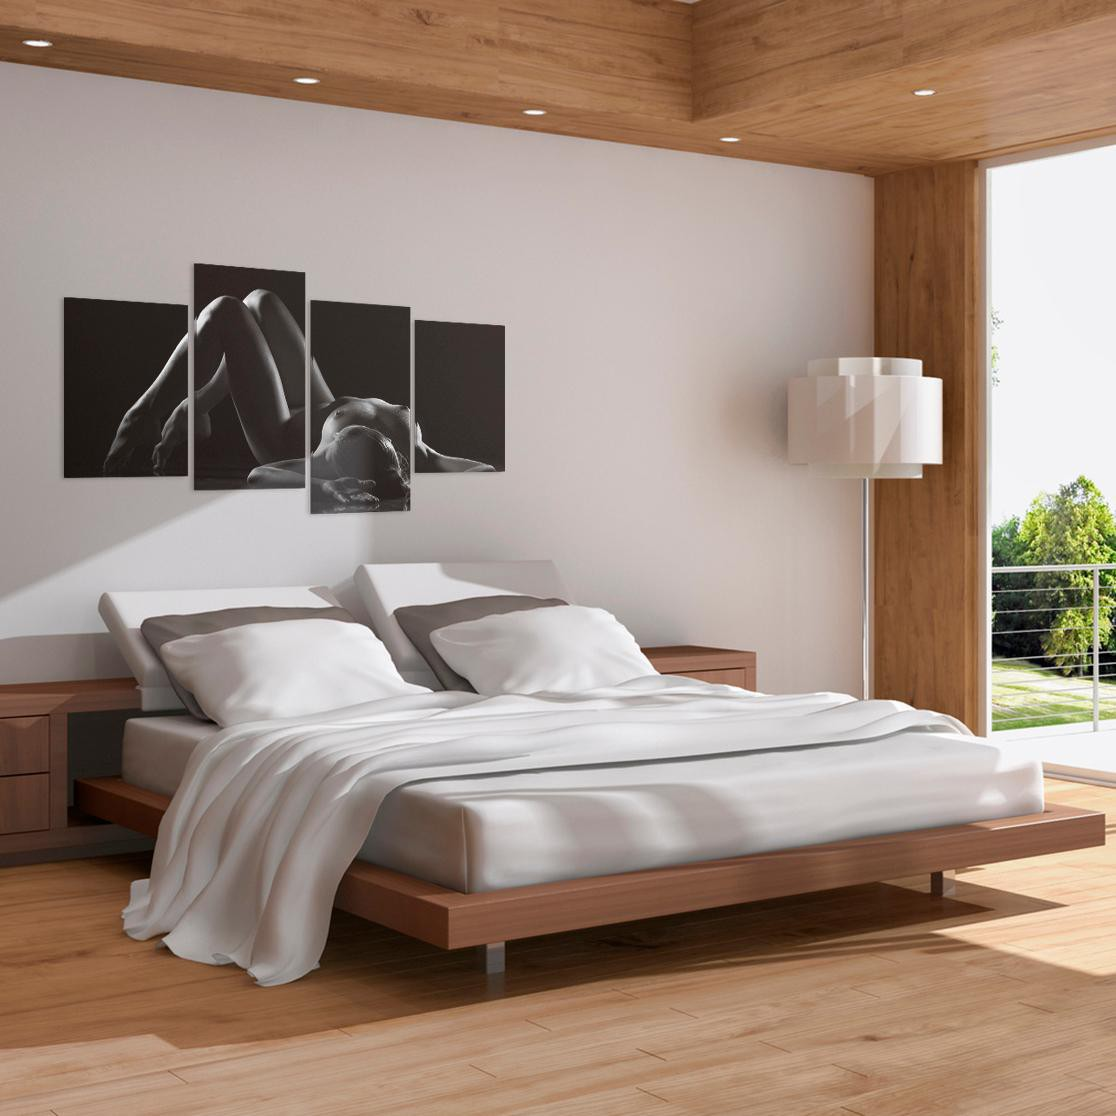 Black And White Artwork For Bedroom: Sensual Canvas Art In Black & White For Your Bedroom